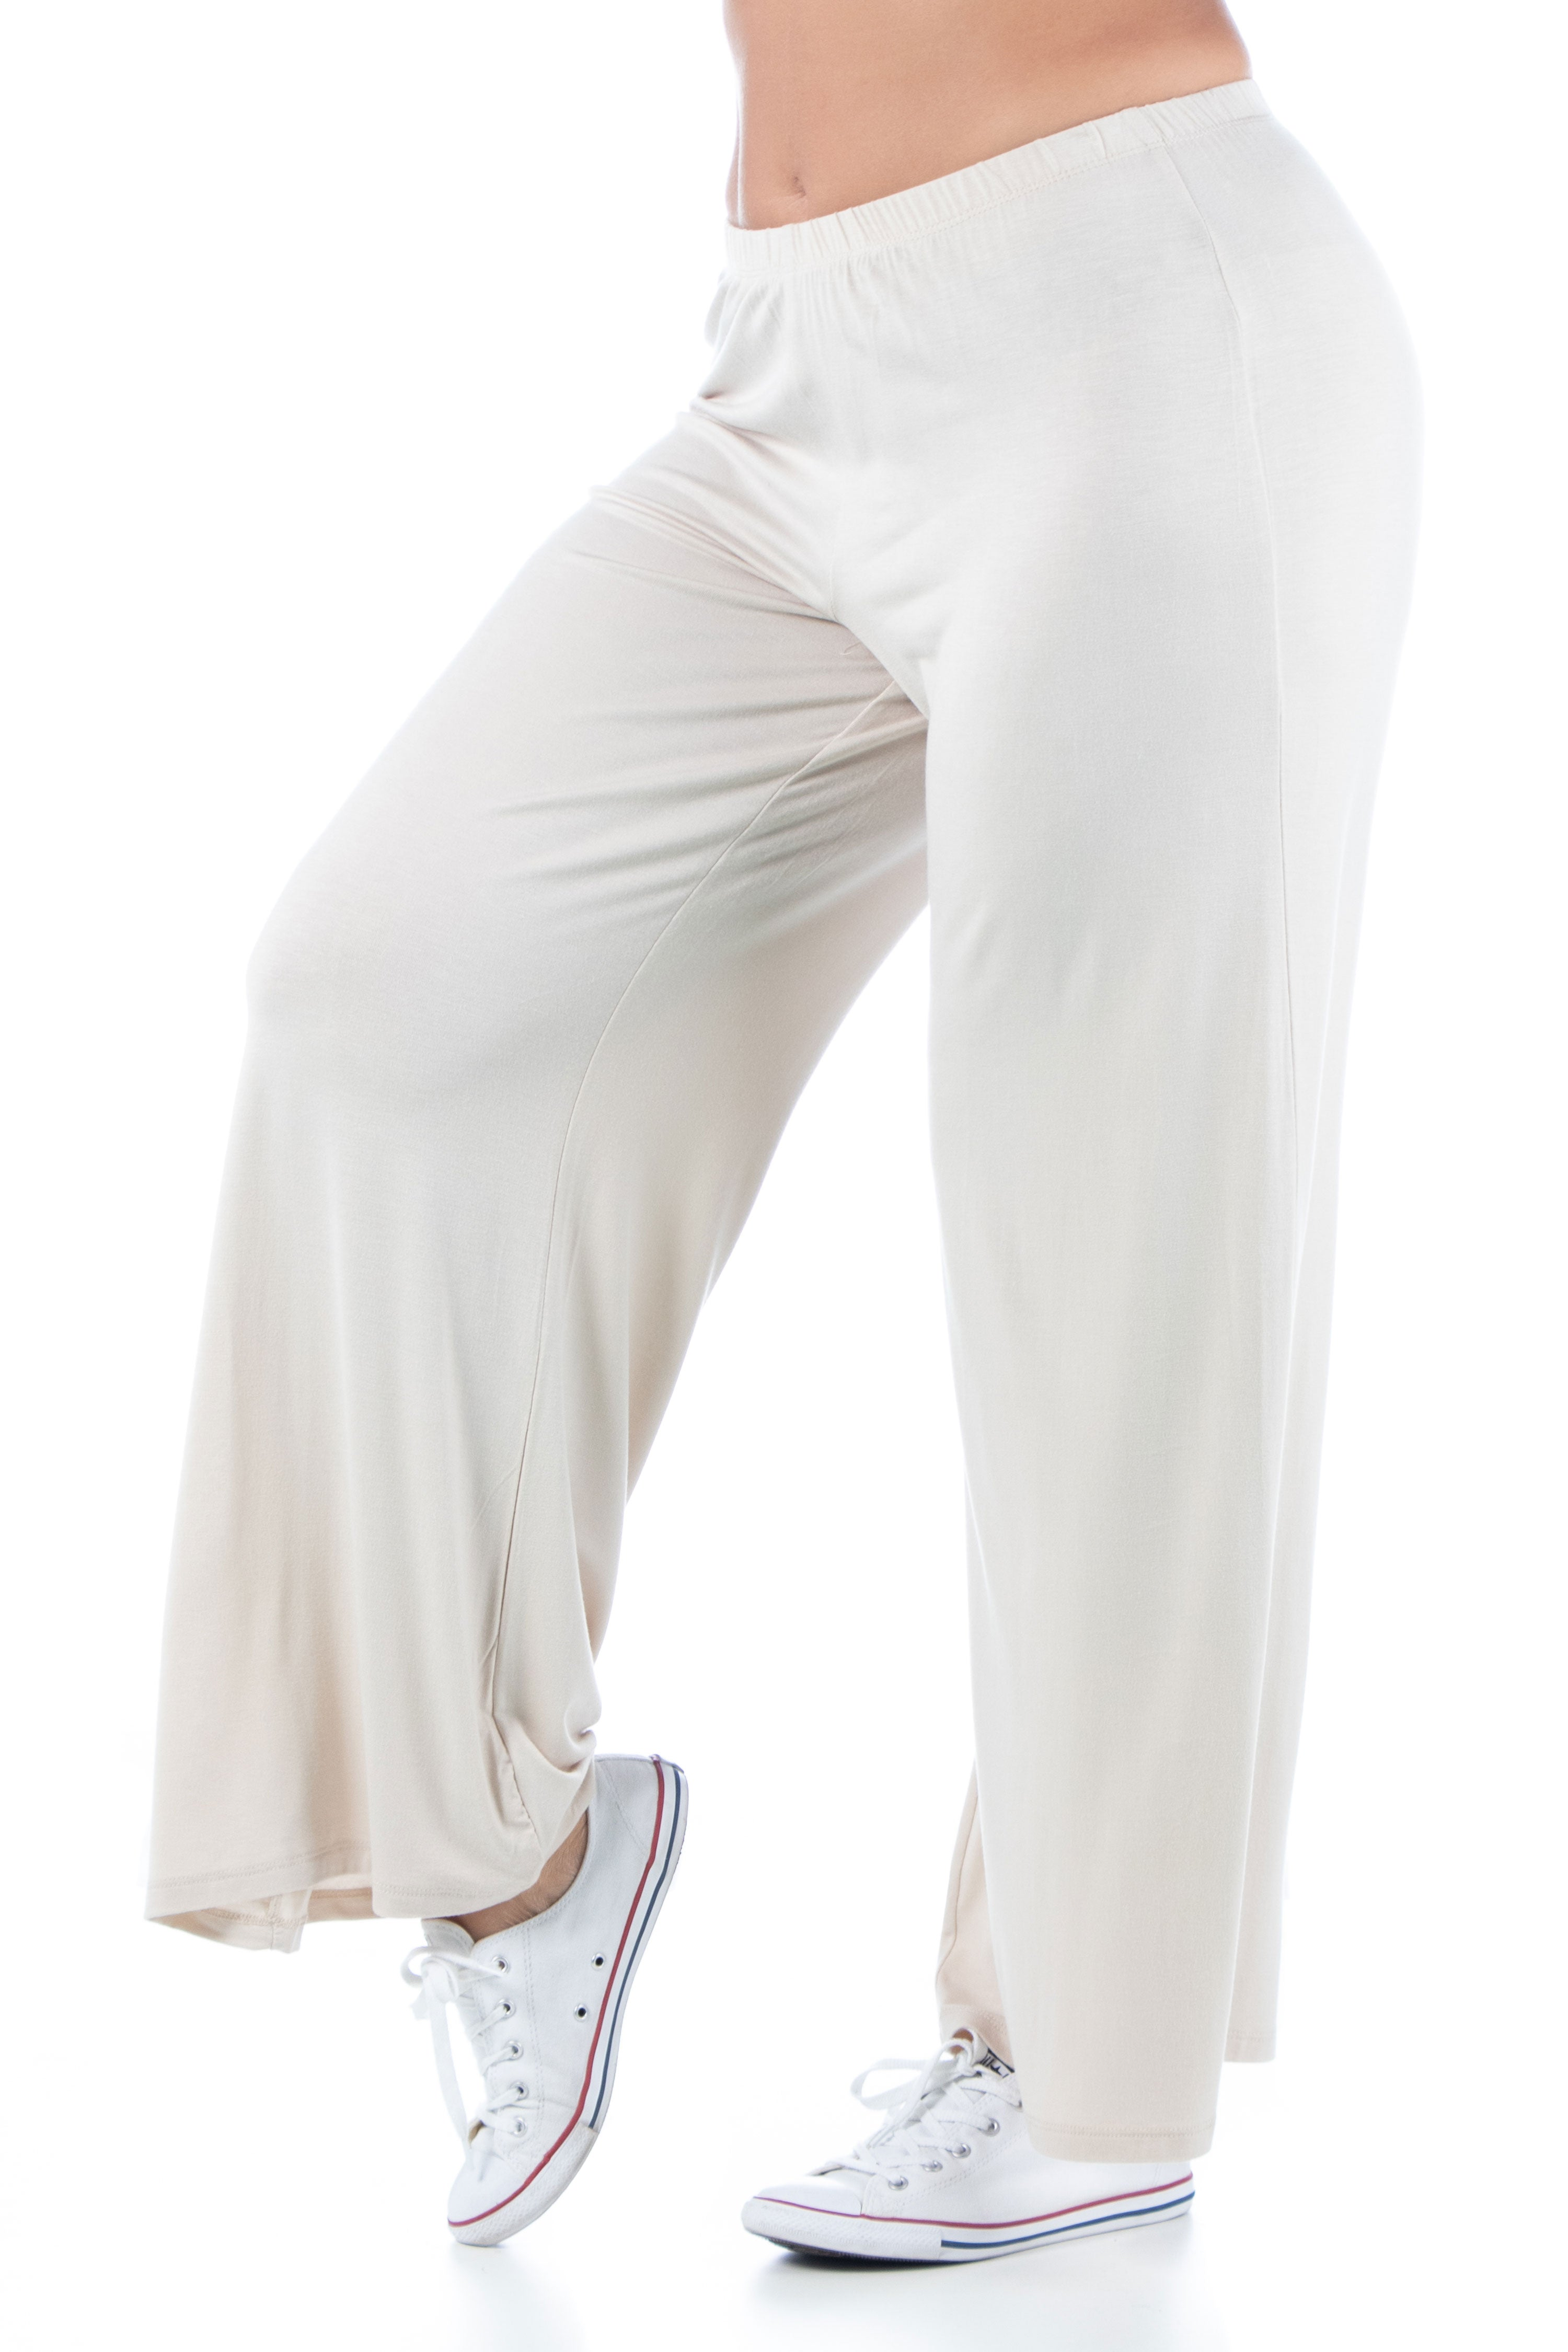 24seven Comfort Apparel Comfortable Solid Color Plus Size Palazzo Lounge Pants